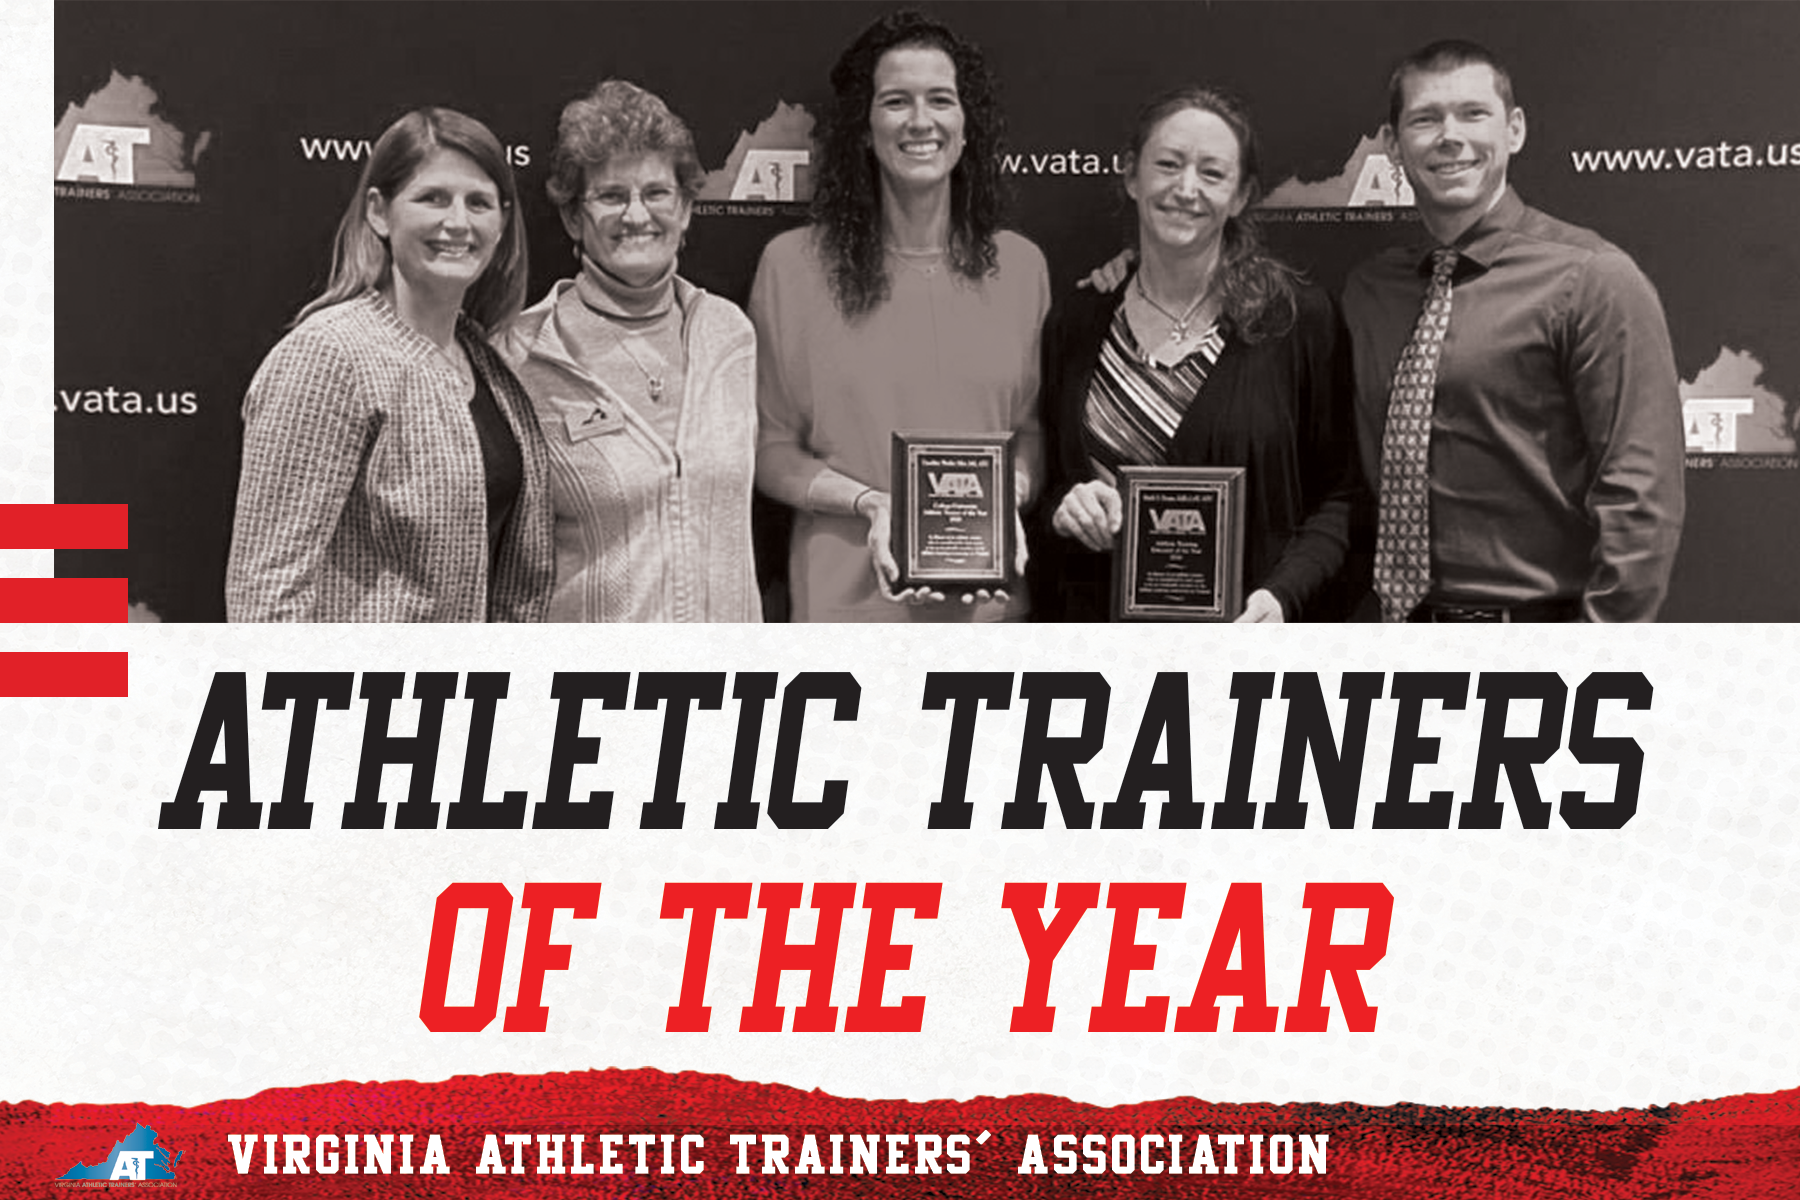 Graphic of athletic trainers of the year. Left to right: Dr. Debbie Bradney, Dr. Pat Aronson, Caroline Wesley Siler, Dr. Emily Evans, and Dr. Tom Bowman